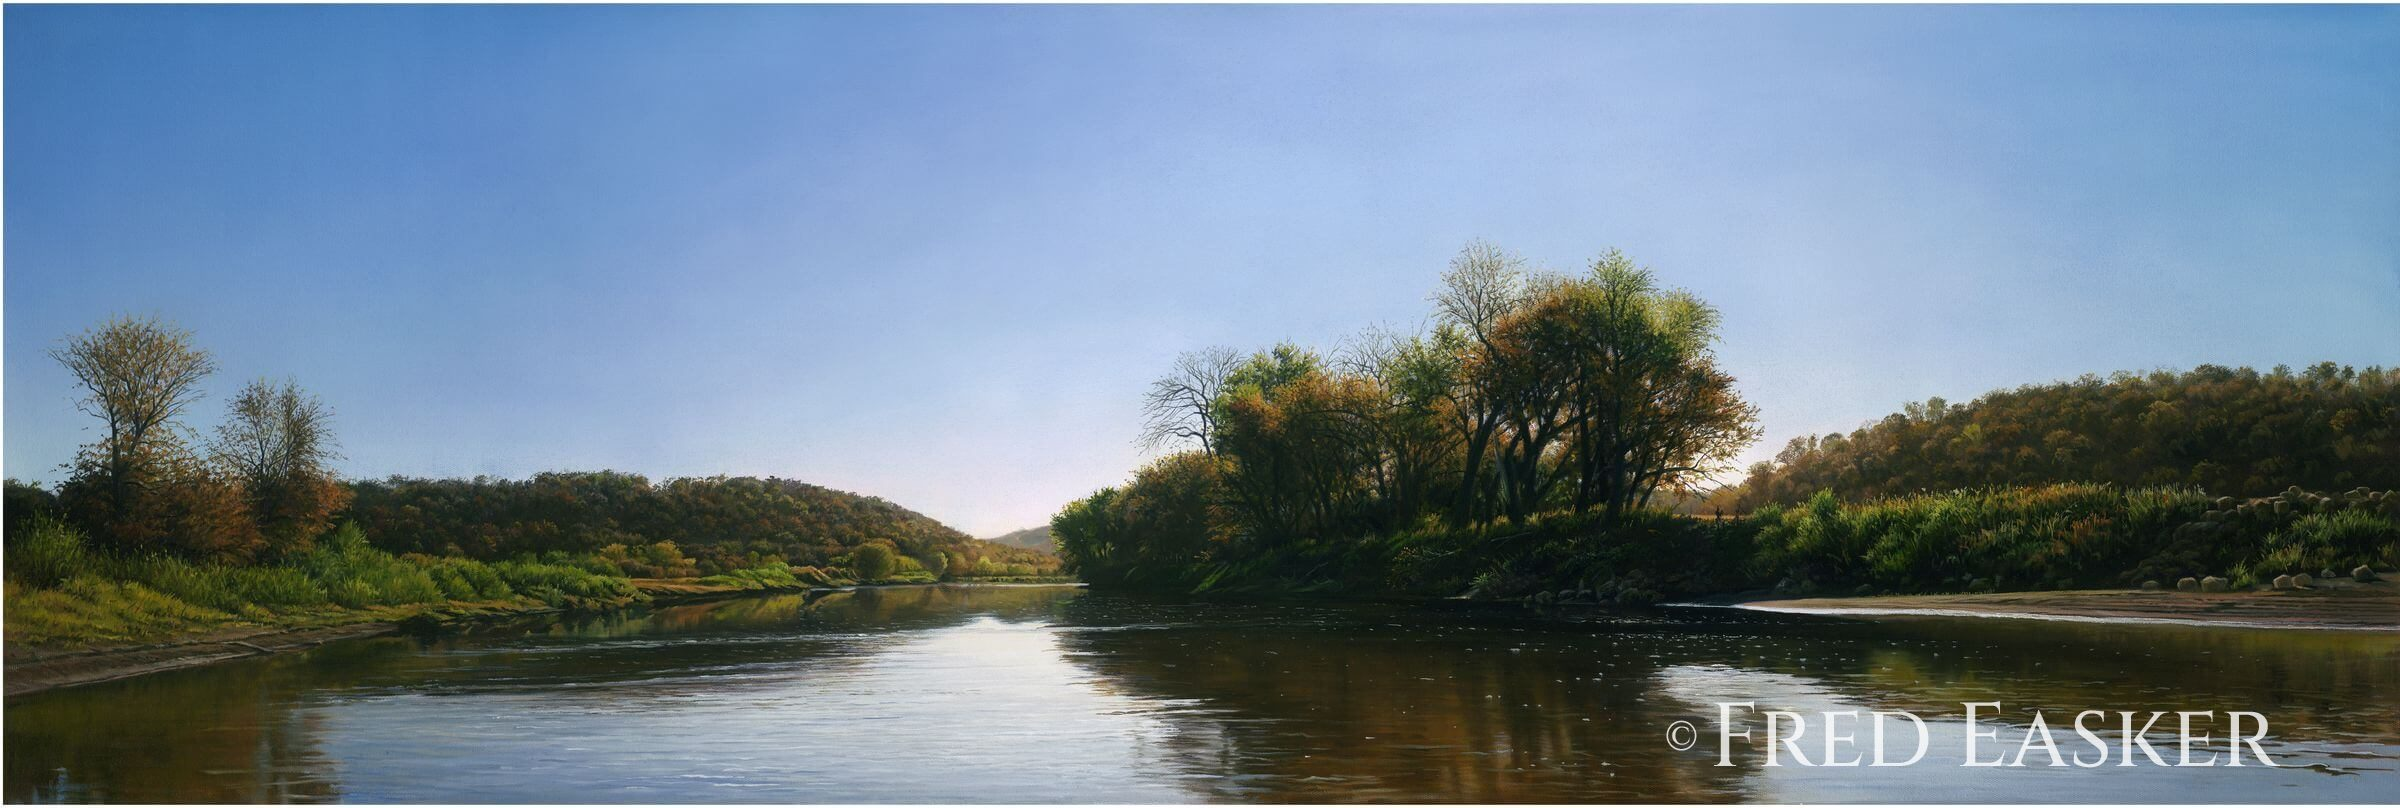 Turkey River Autumn by Fred Easker